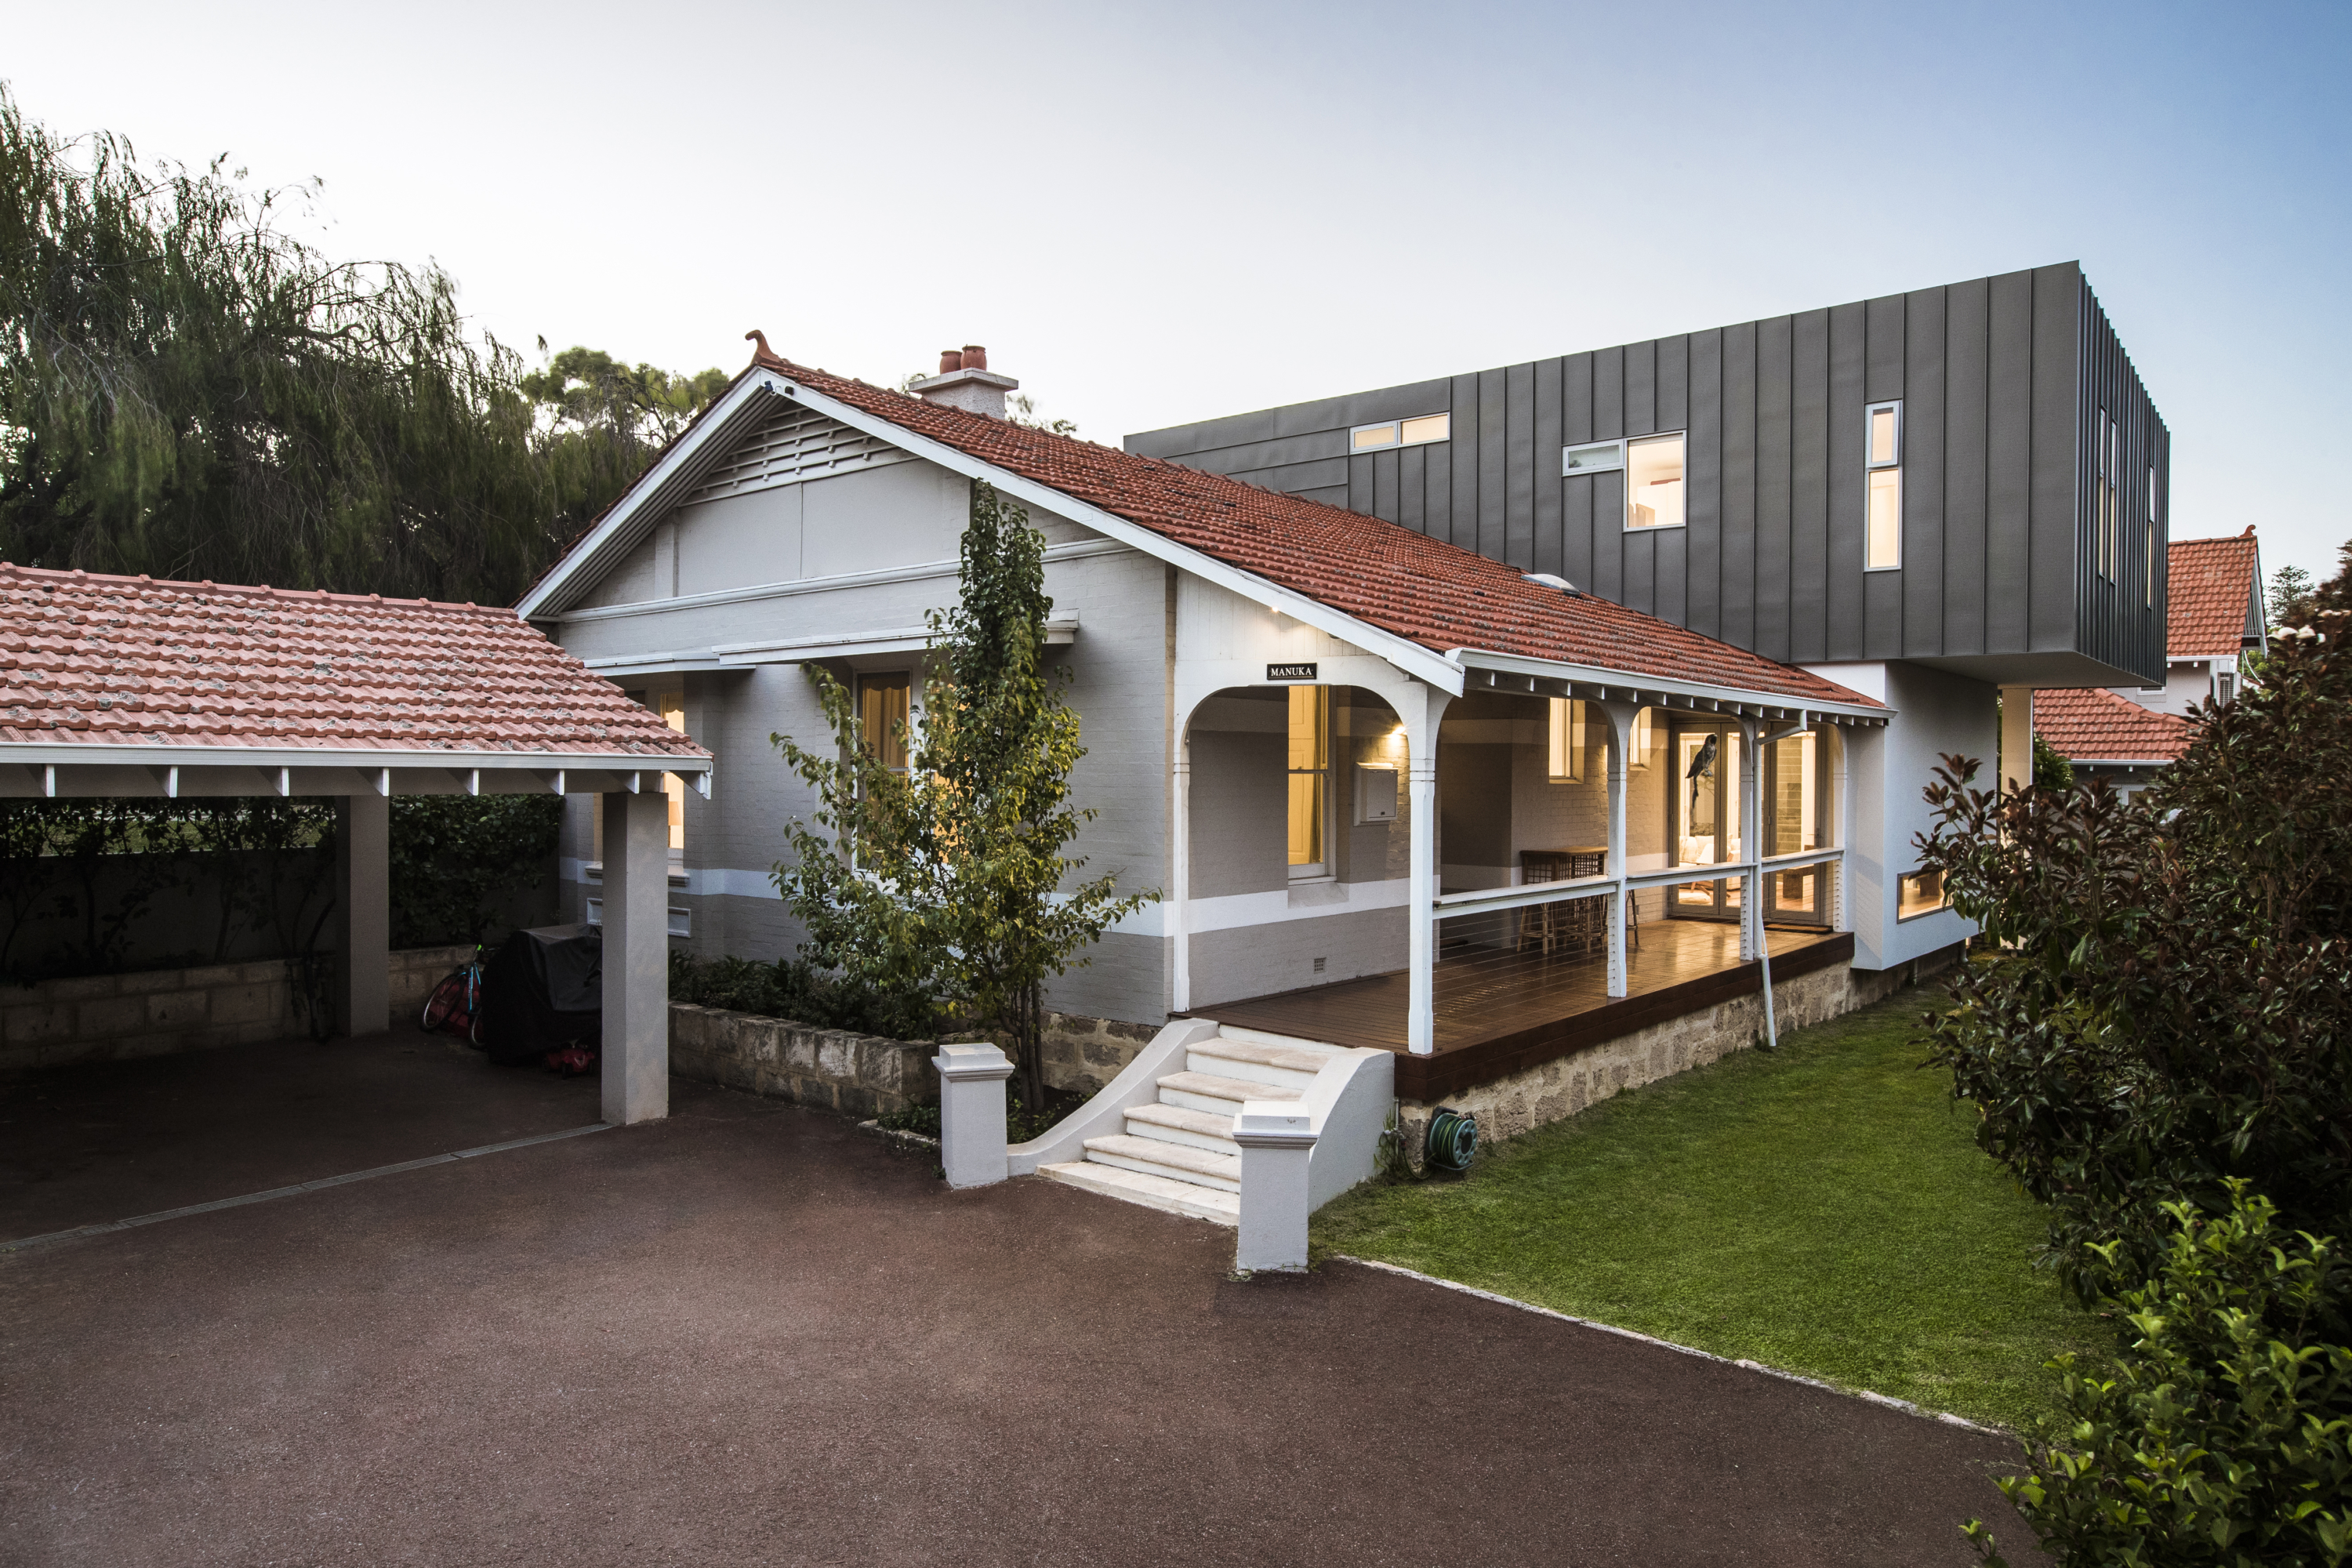 Pleasant Prefab Extension Home Doubled In Size In Just 6 Weeks Home Remodeling Inspirations Cosmcuboardxyz